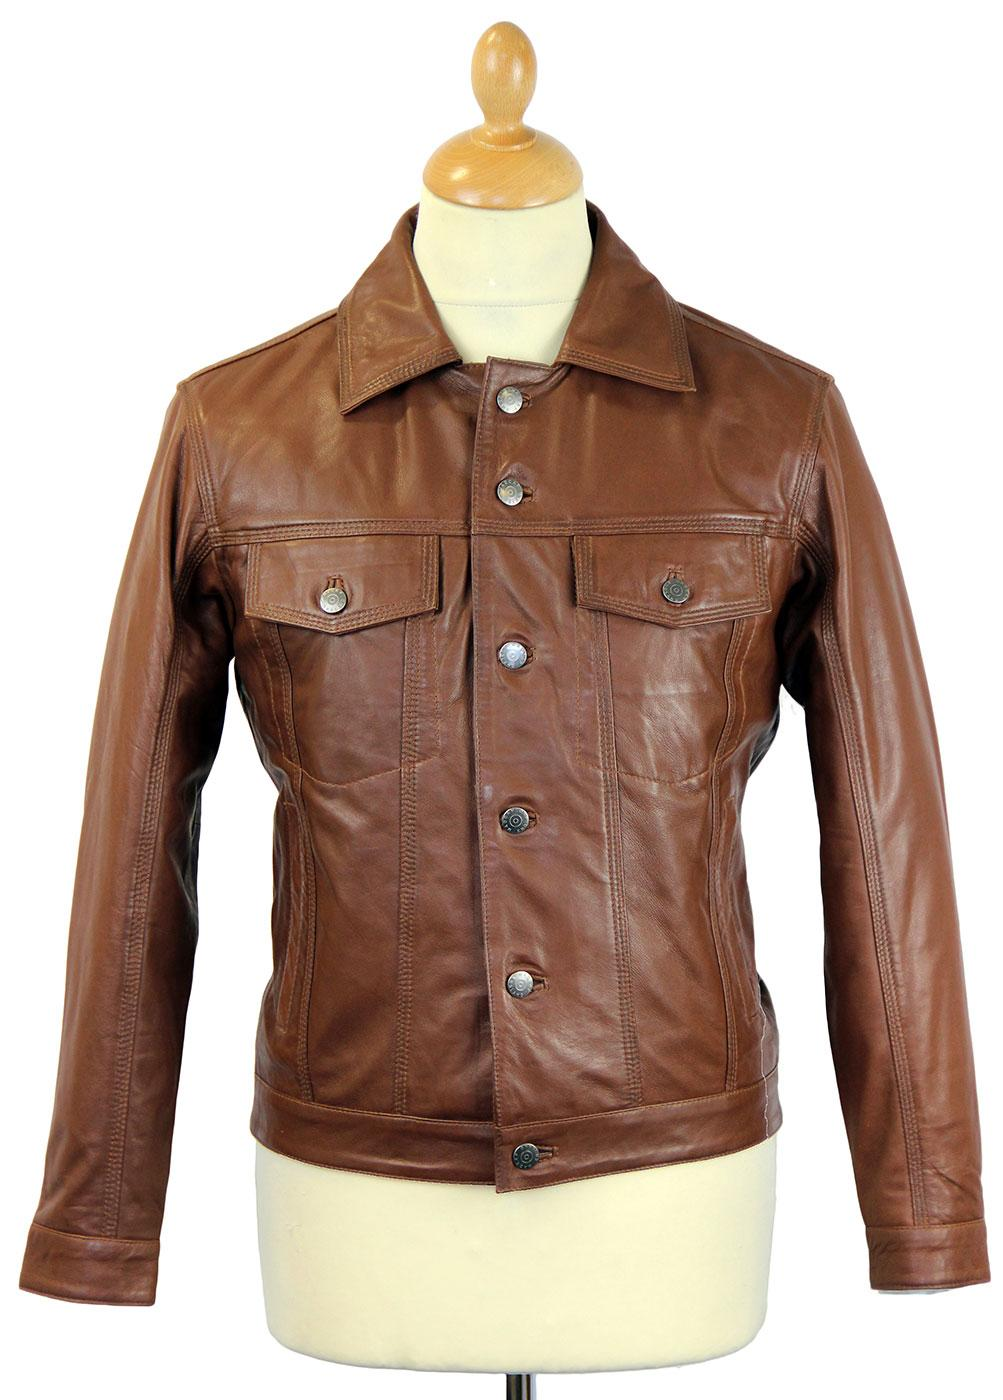 Badlands MADCAP ENGLAND Retro Leather Jacket BROWN